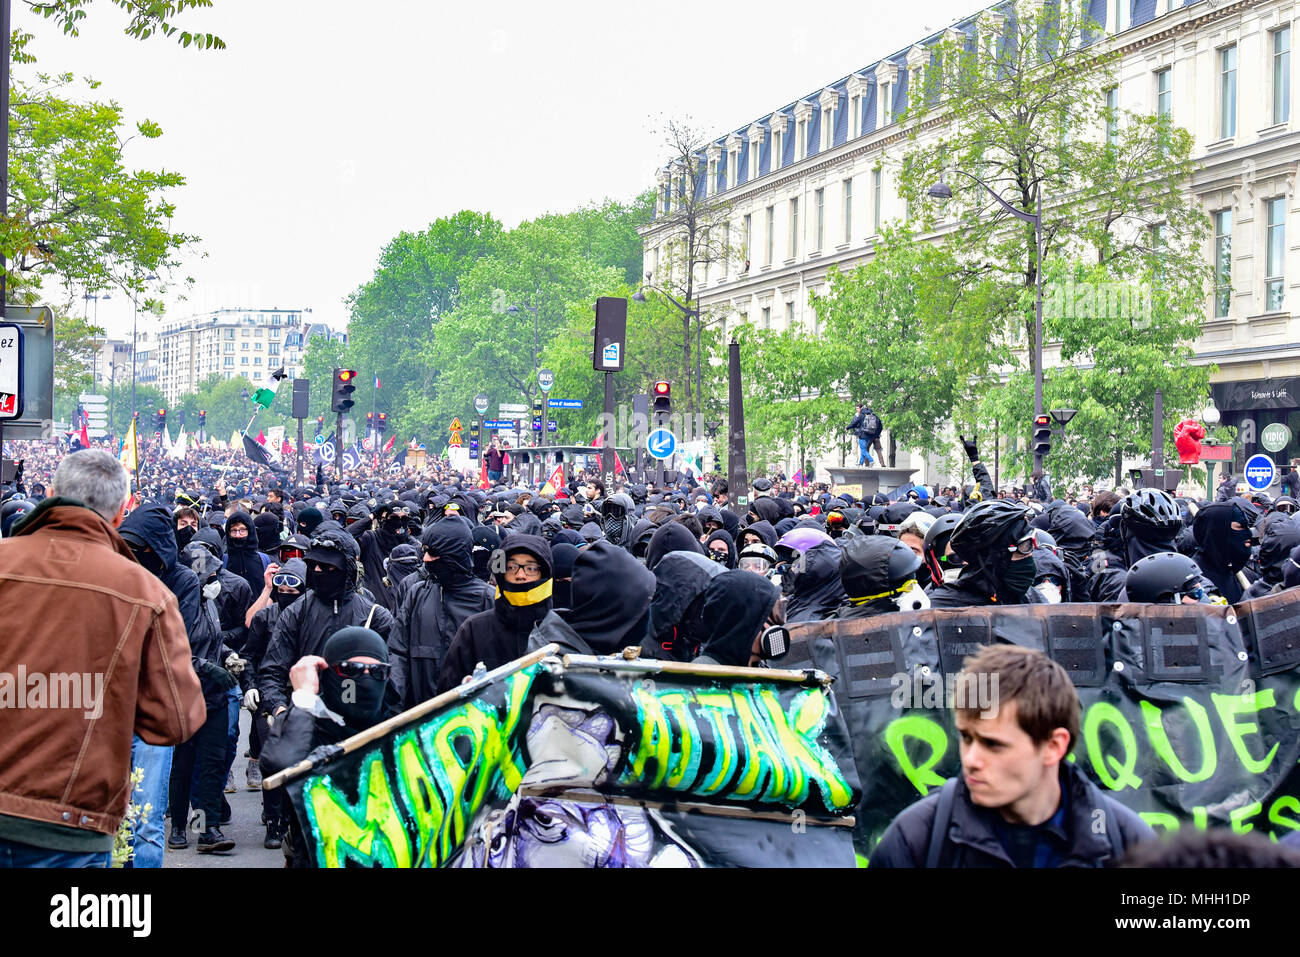 Paris, France. 1st May 2018. Paris police clash with protesters as demonstrations turn violent. Credit: Peter Manning/Alamy Live News Stock Photo